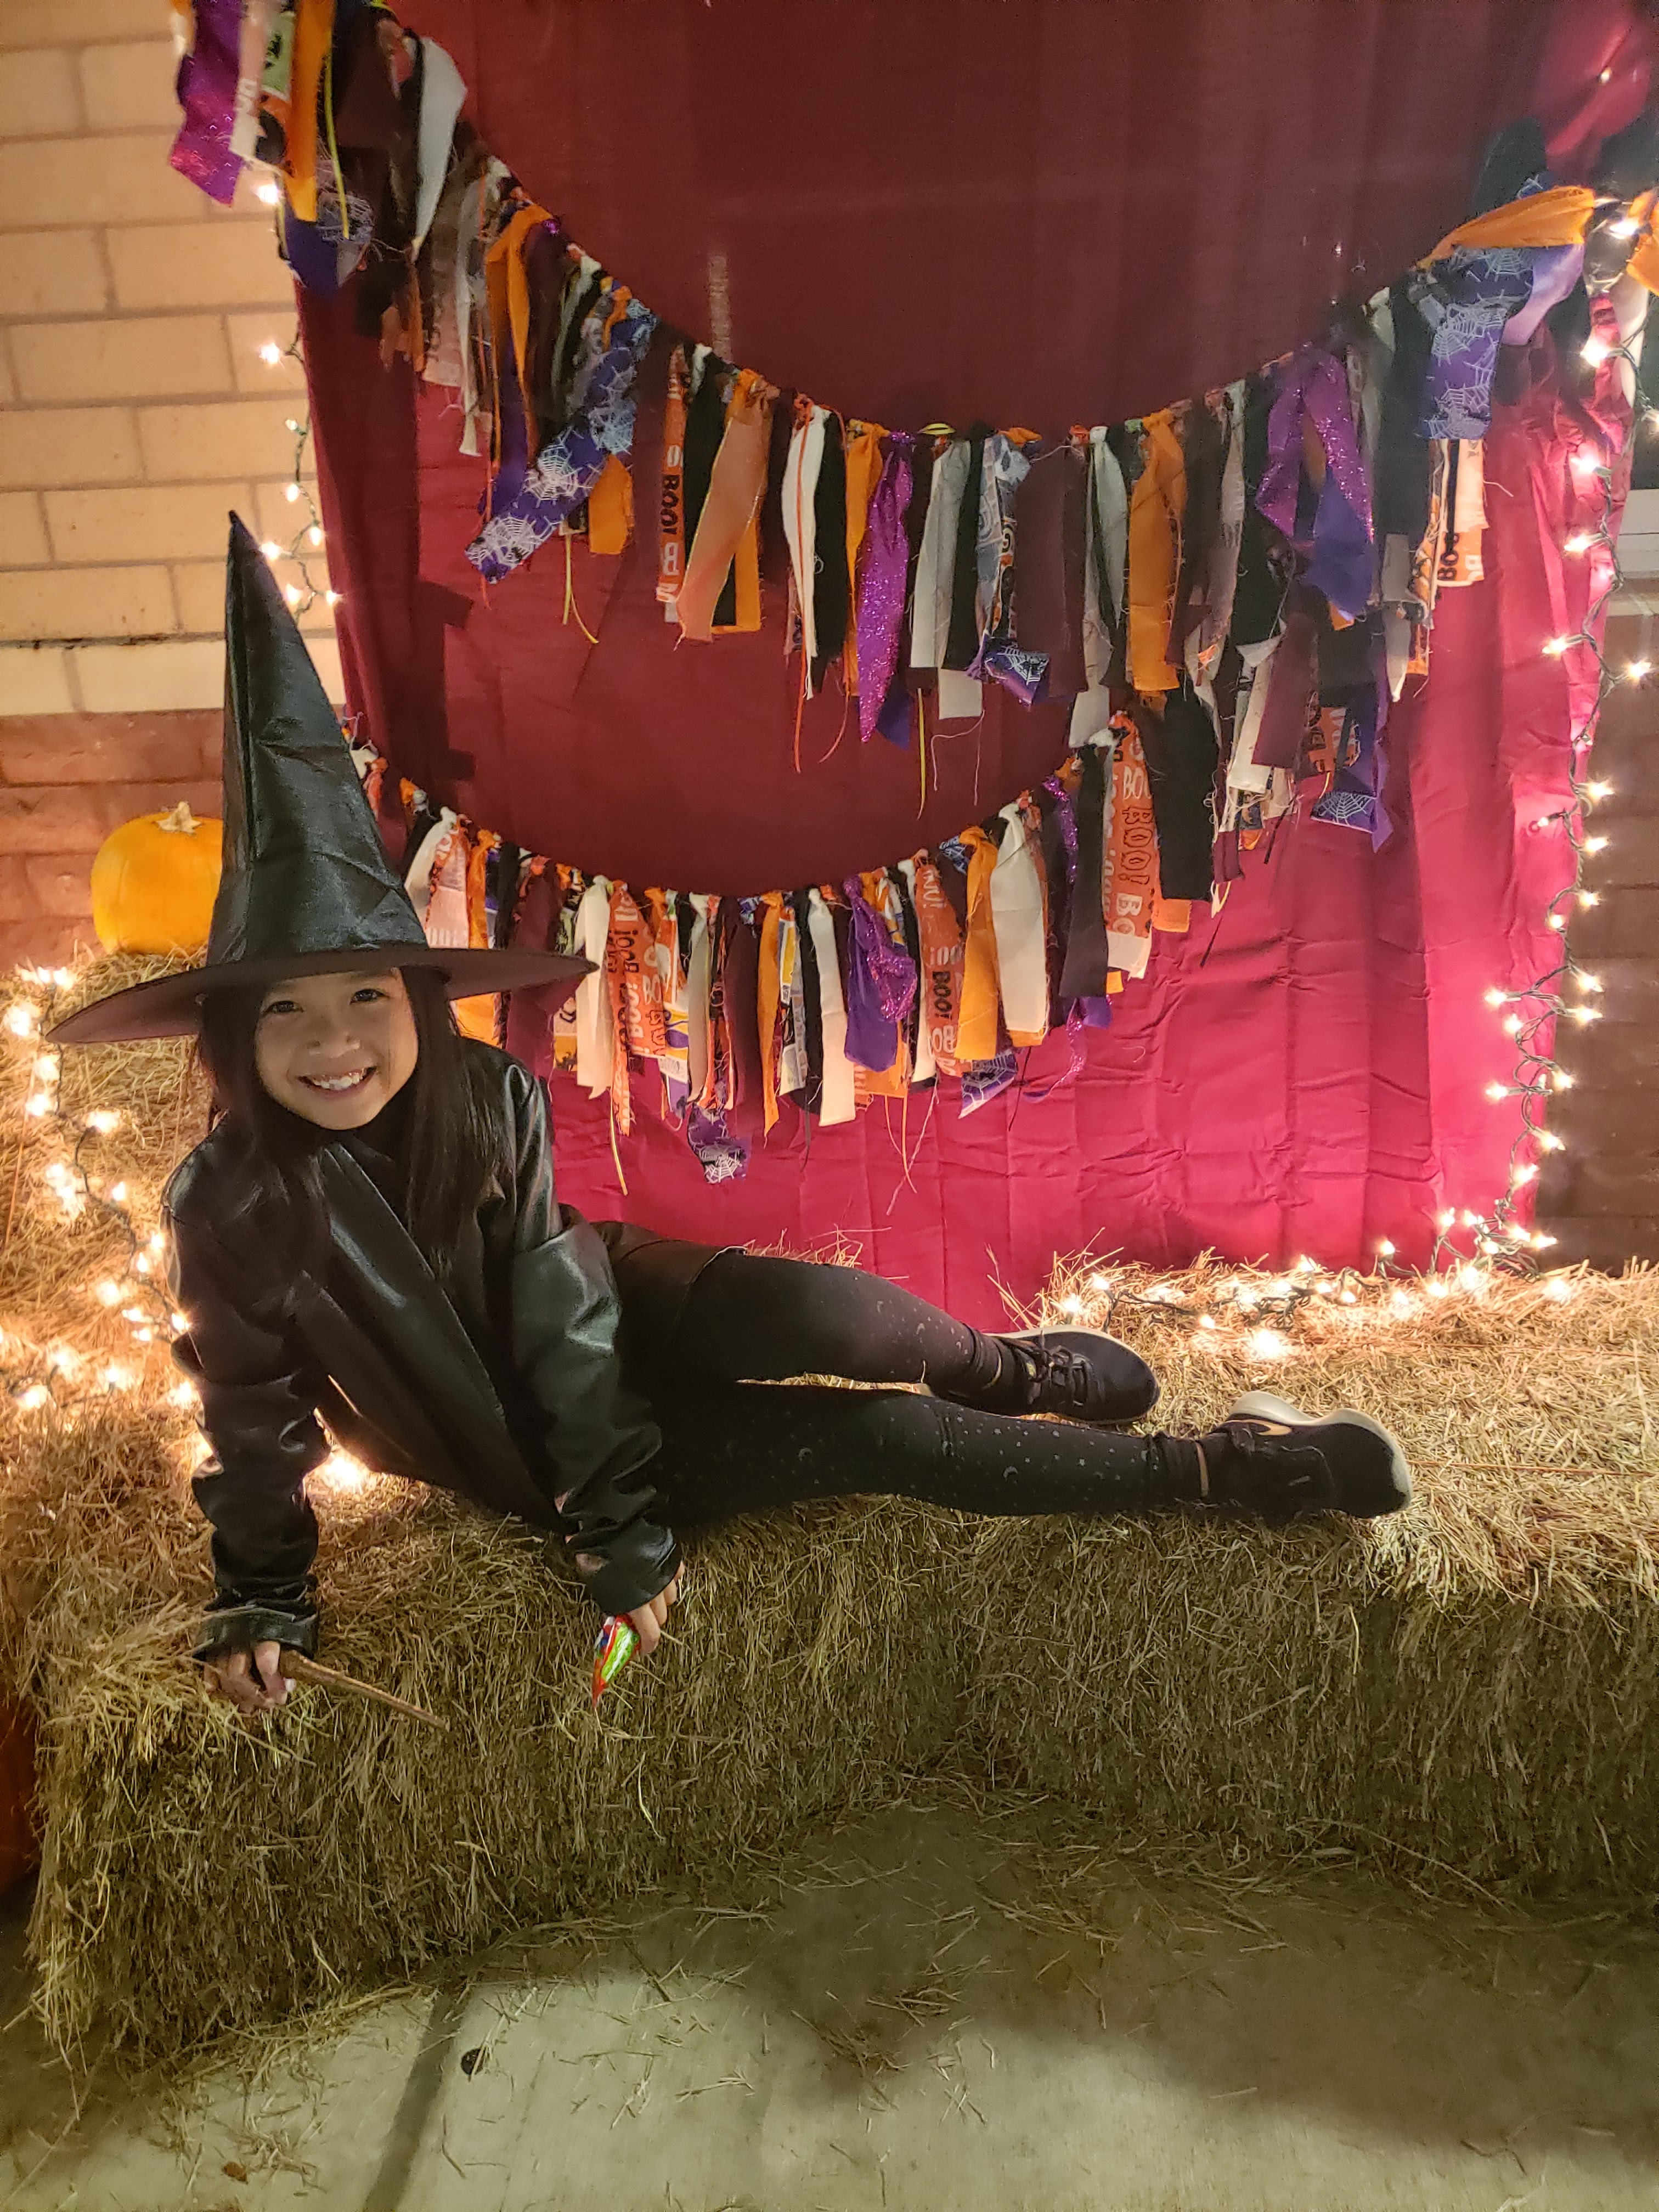 A photo of Kimmy from when she dressed up as a witch one year. She looks really happy on this bale of hay.